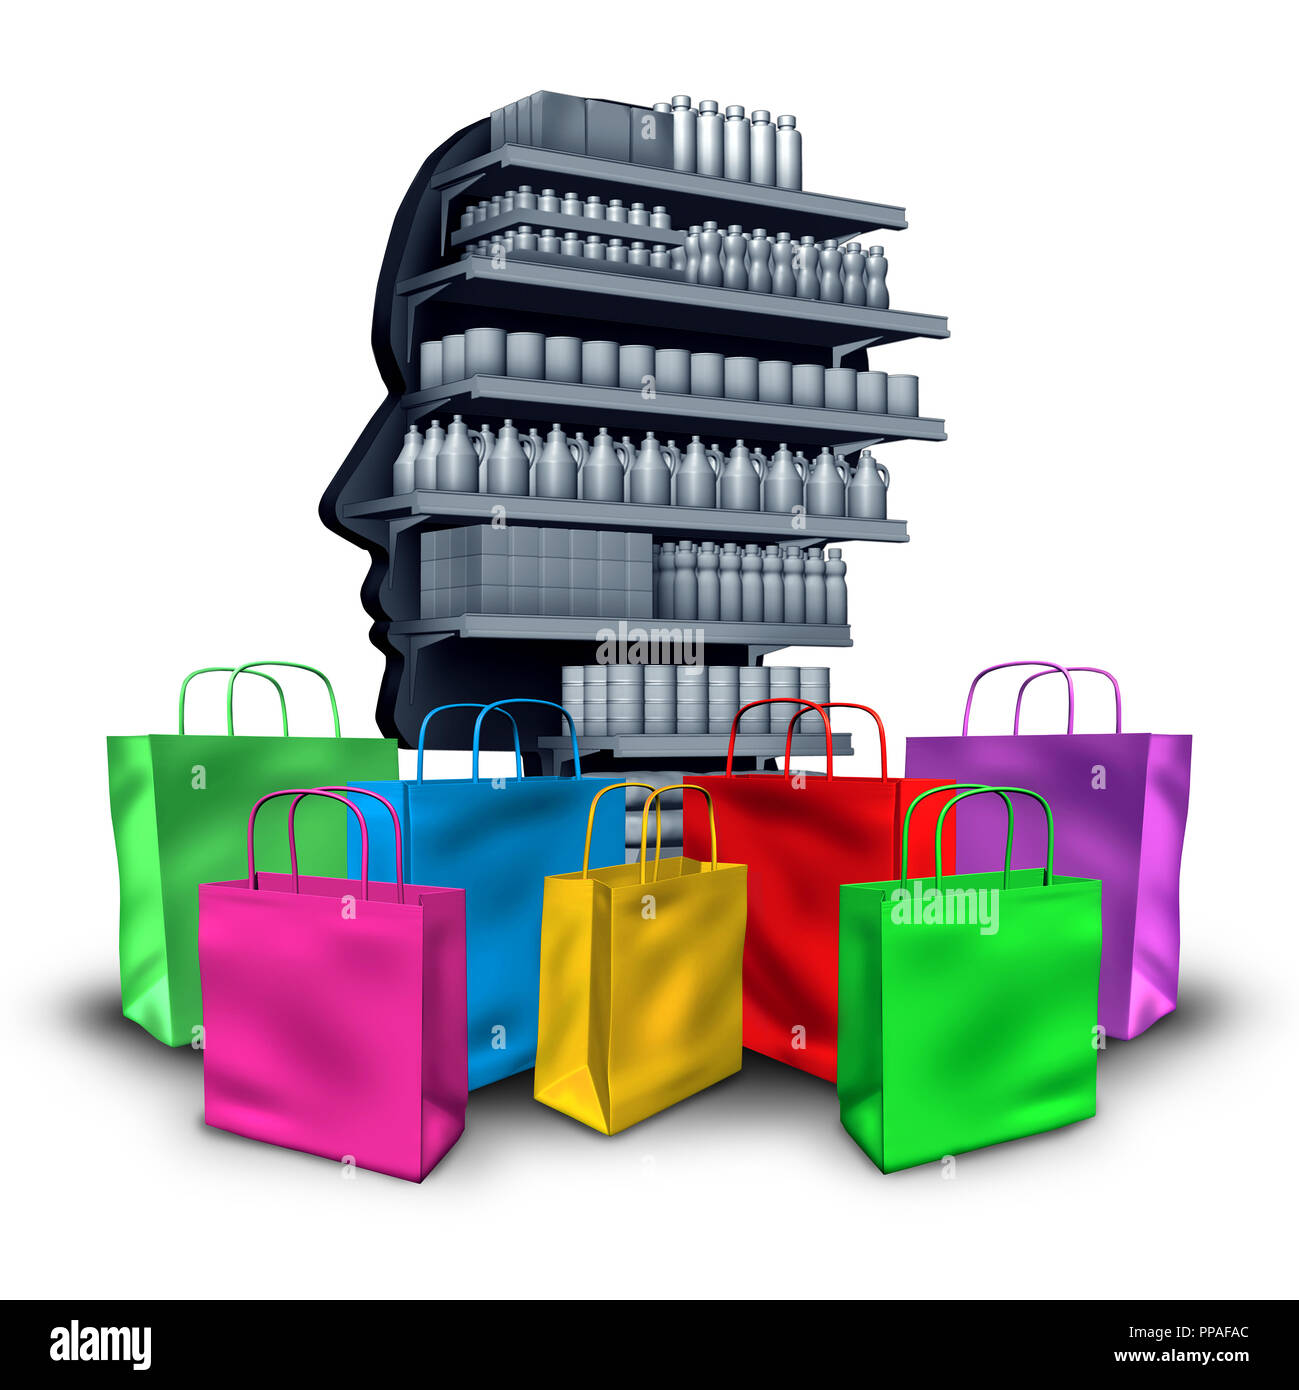 Spending concept consumerism and material possessions concept as the desire to buy and possess objects as a shopaholic idea of greed. Stock Photo